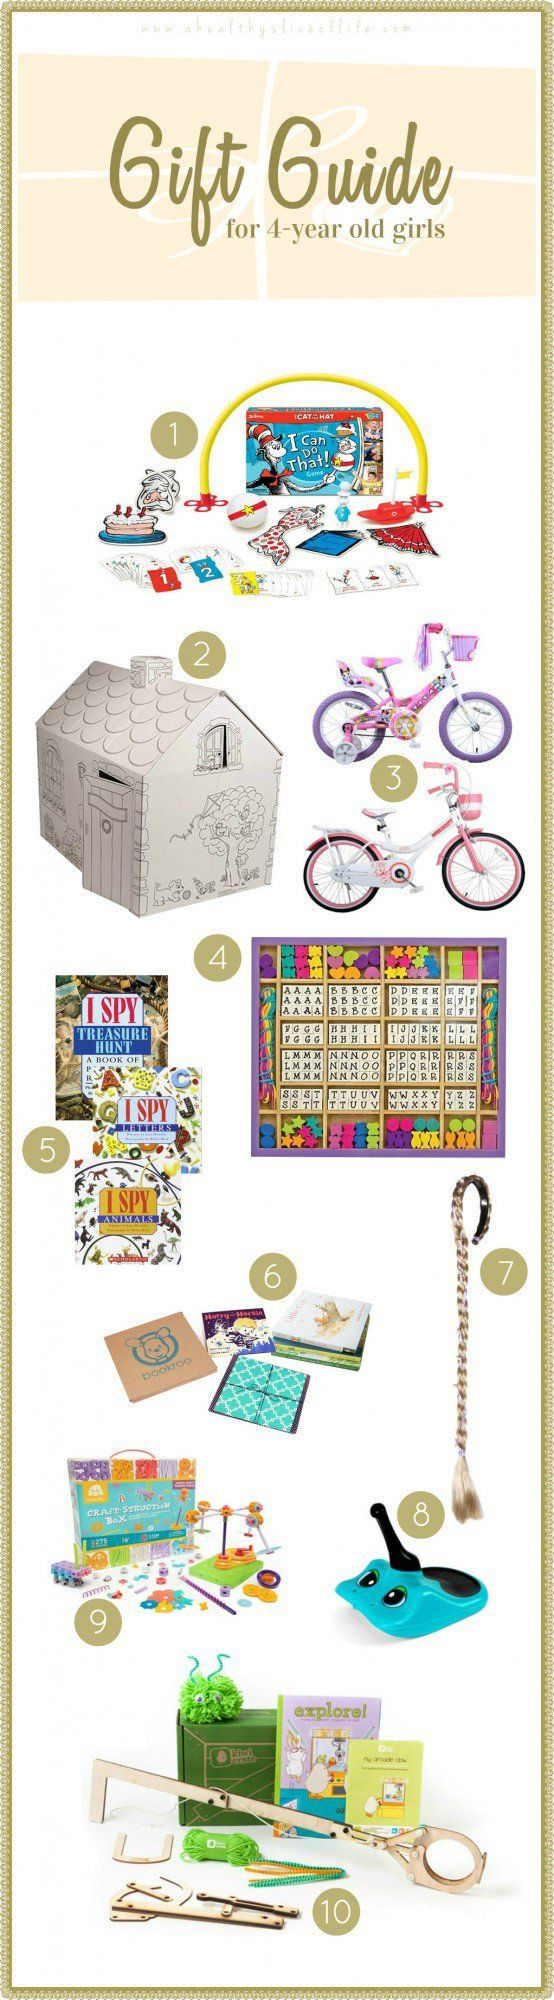 Best ideas about Gift Ideas For 4 Year Old Girls . Save or Pin 1000 ideas about 4 Year Old Girl on Pinterest Now.